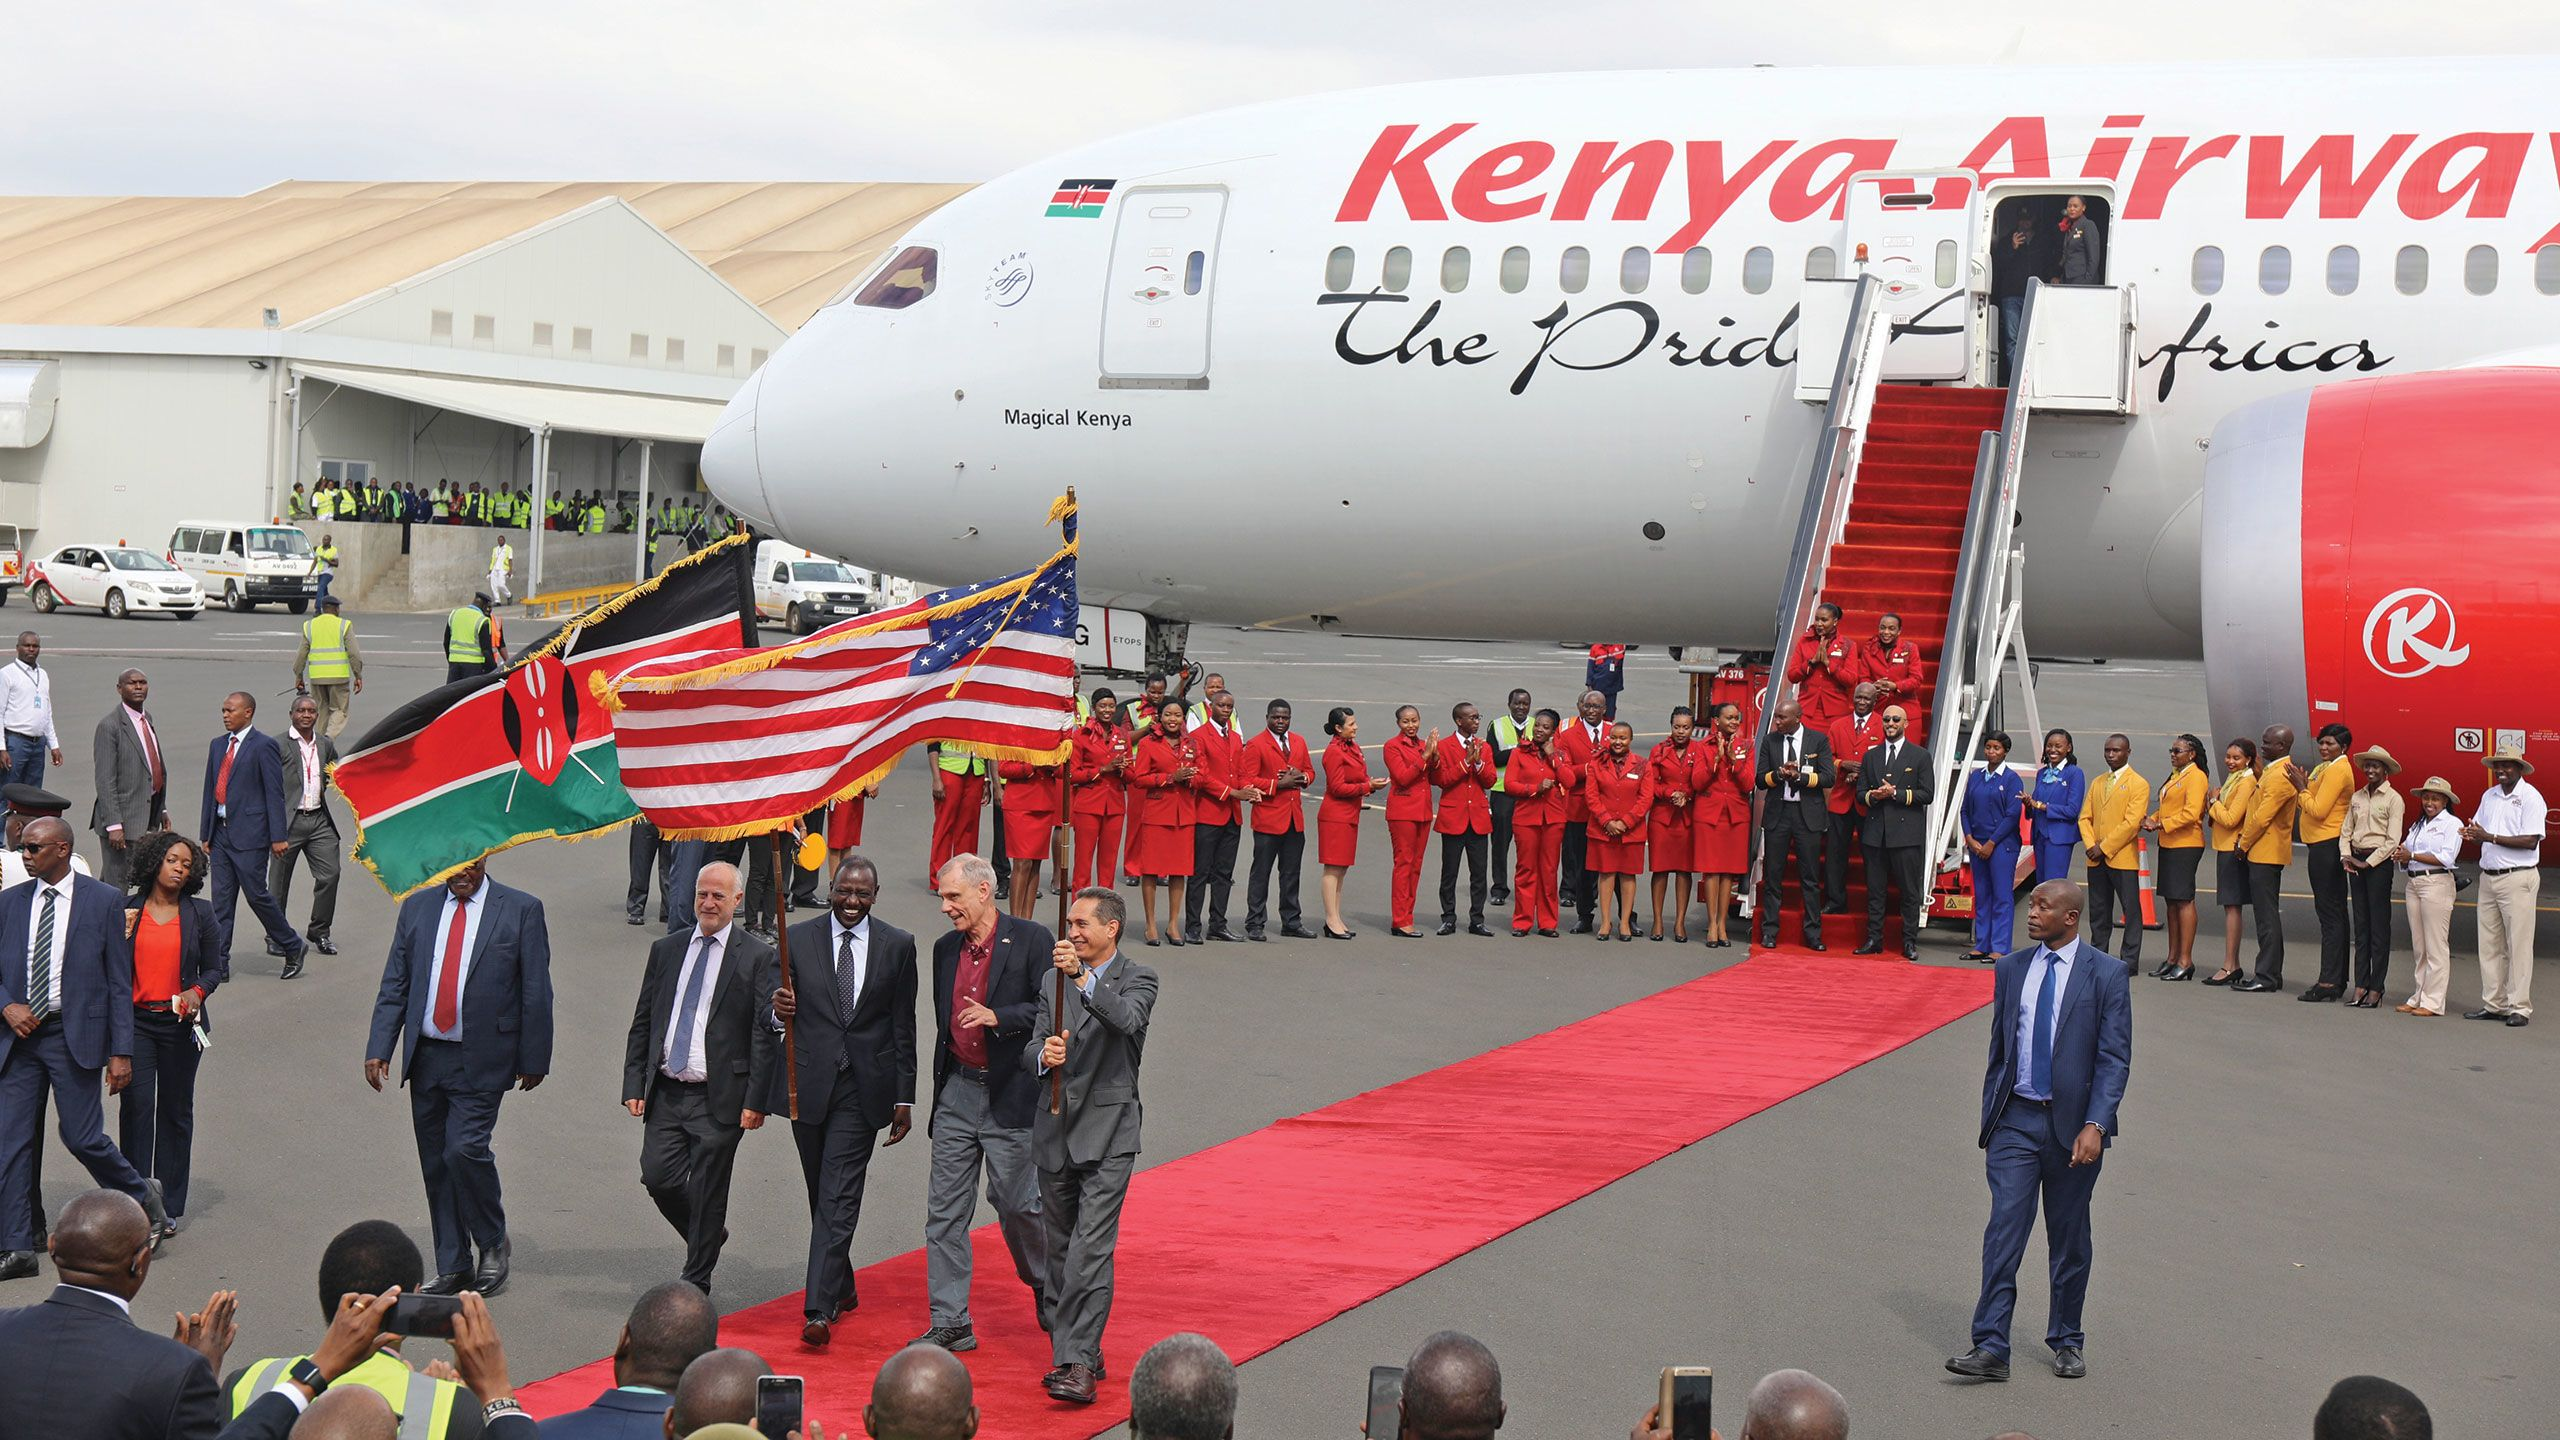 Kenya's deputy president William Ruto, center, U.S. ambassador to Kenya Robert Godec, in a red shirt, and Kenya Airways chairman Michael Joseph, left of Ruto, help celebrate the first nonstop commercial flight between the U.S. and Kenya at Nairobi's Jomo Kenyatta Airport in October. Photo courtesy of Kenya Tourism Board